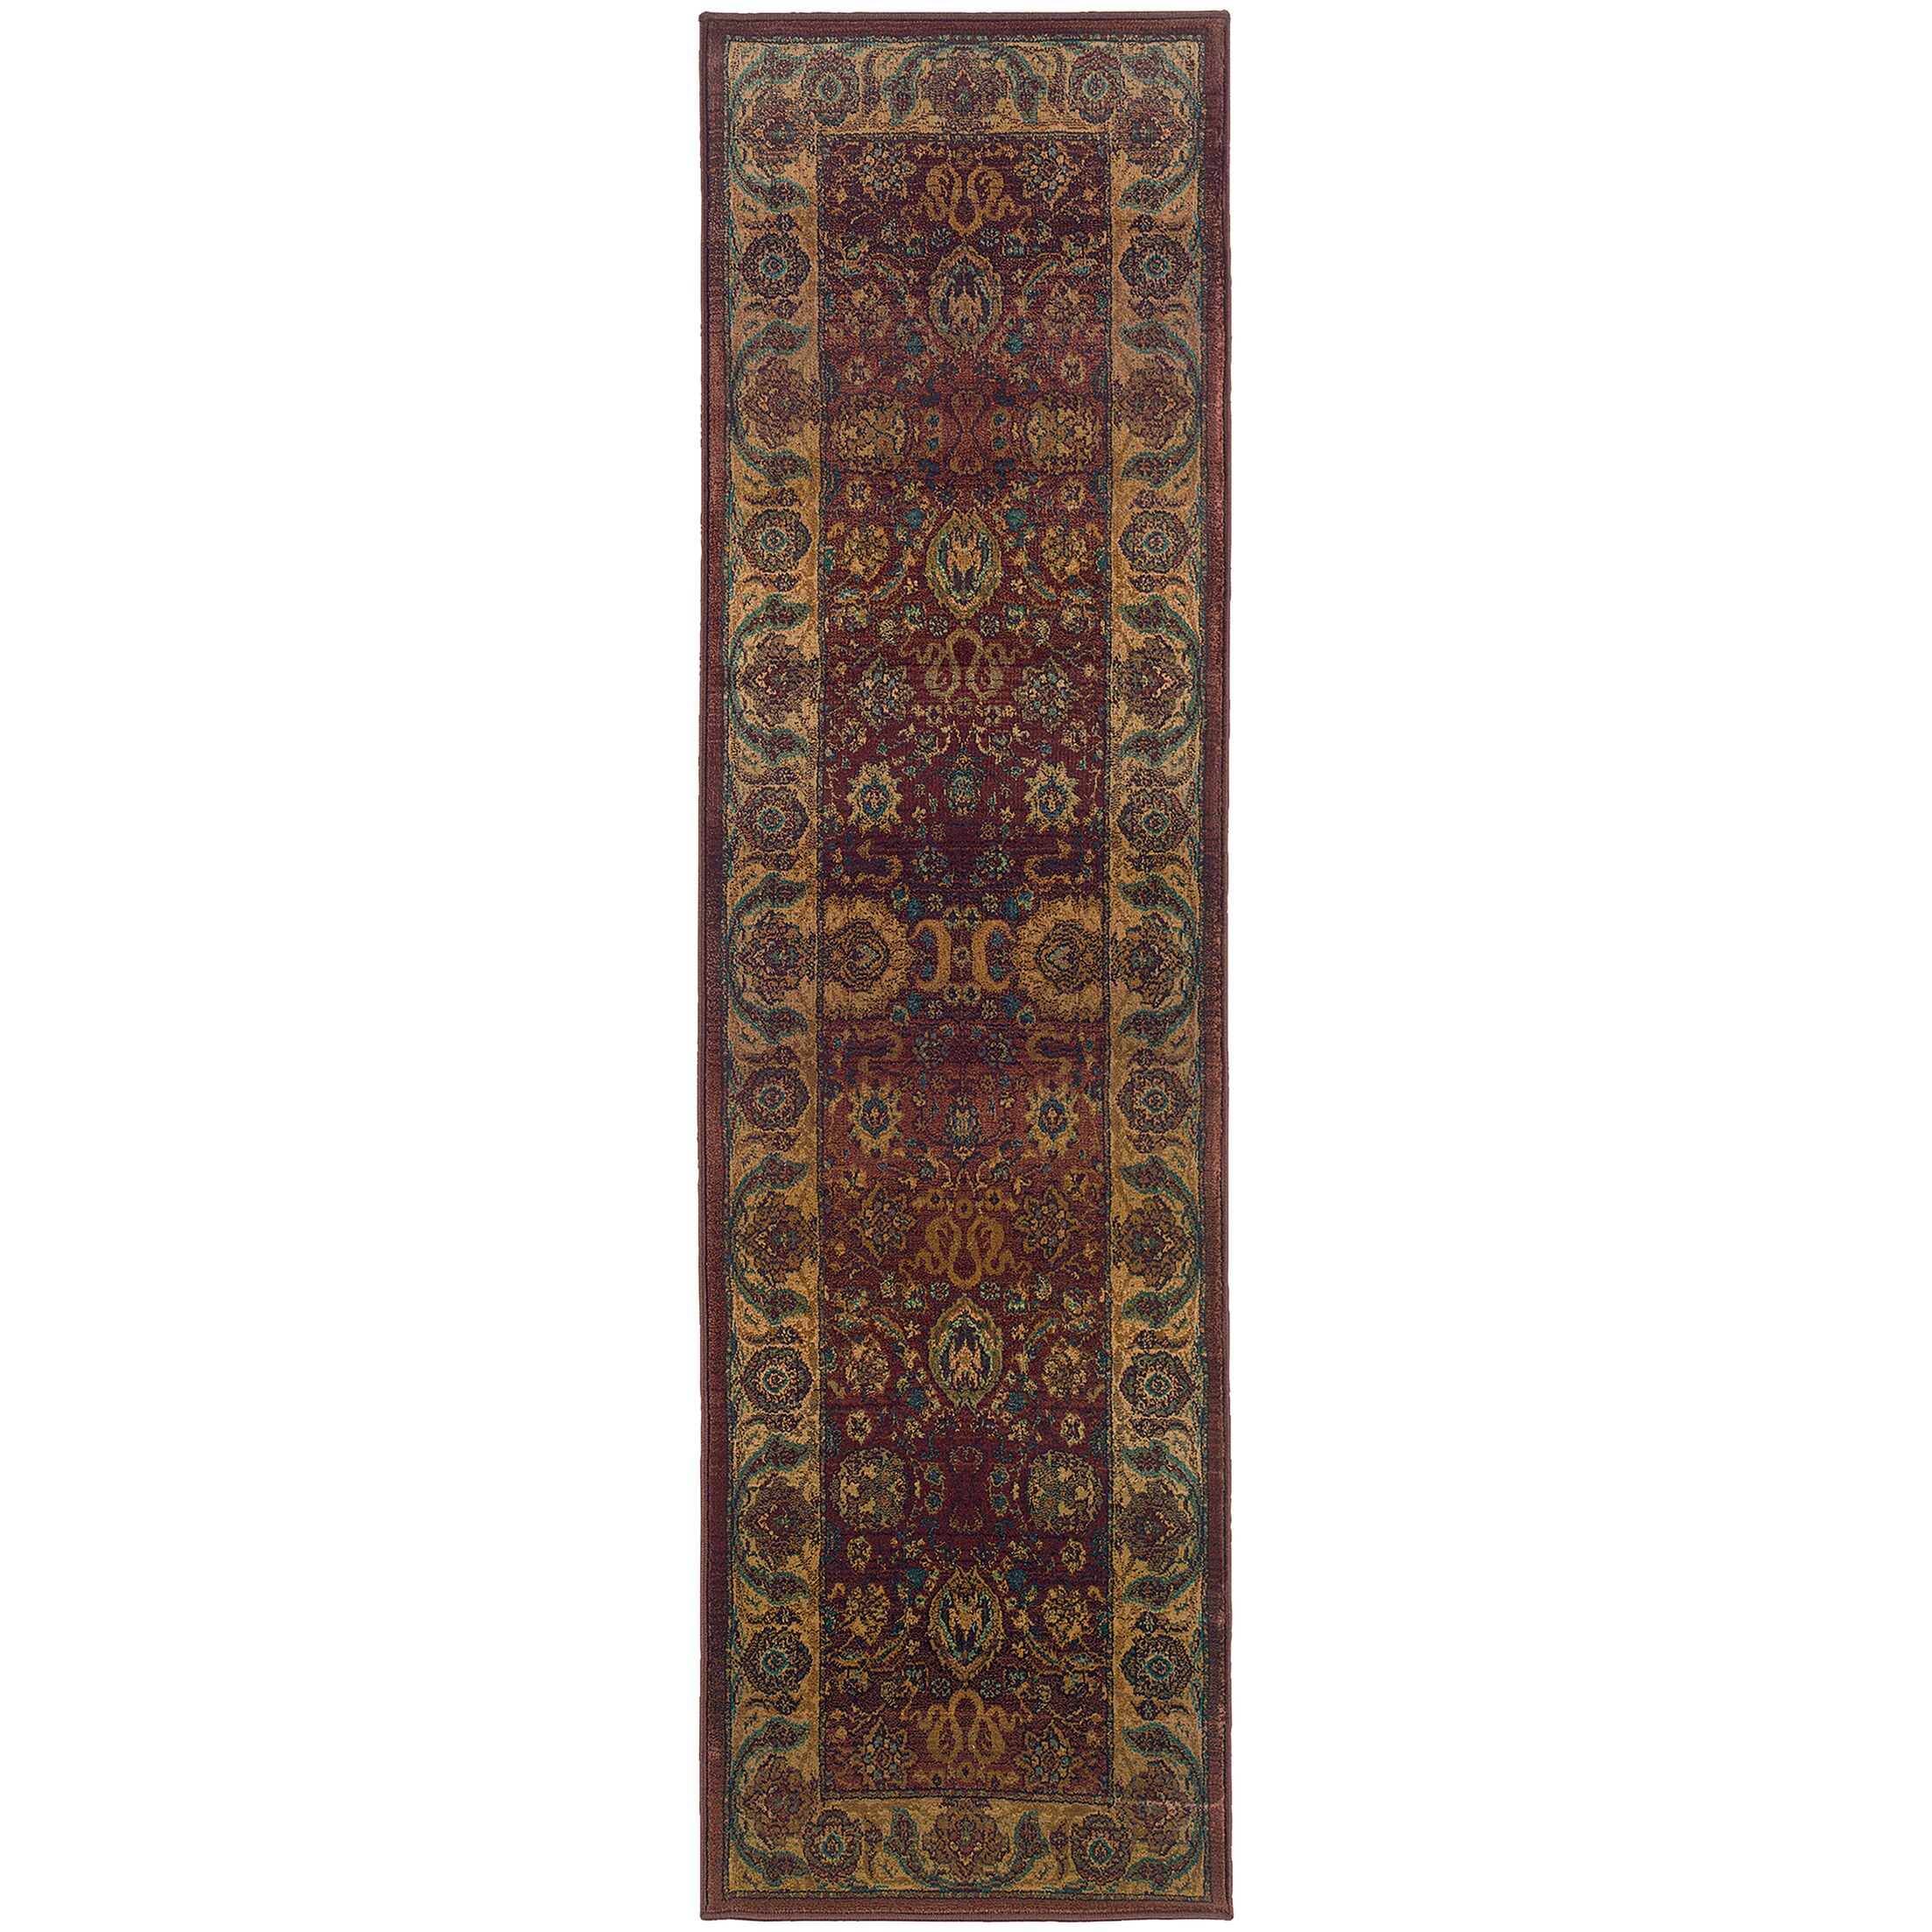 Pressley Brown Area Rug Rug Size: Rectangle 9'9